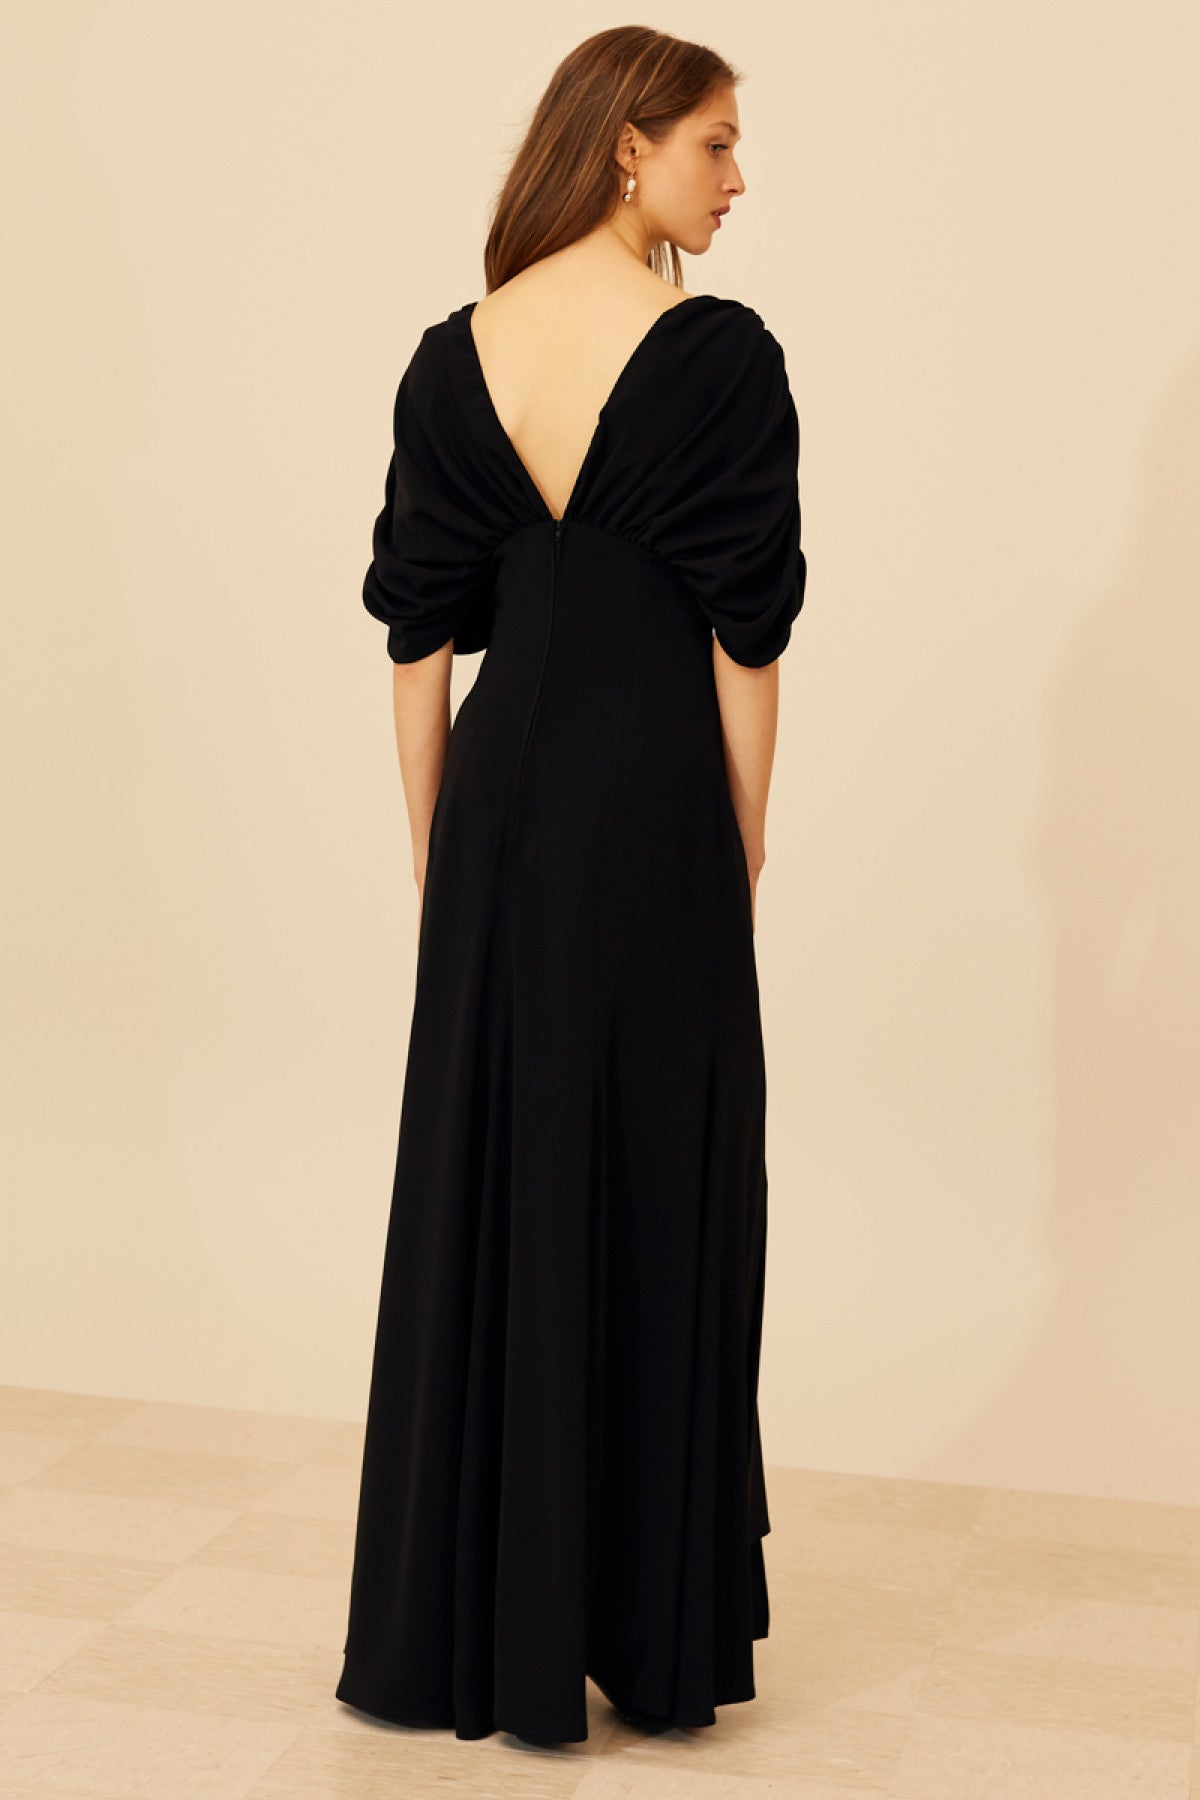 OVATION GOWN black